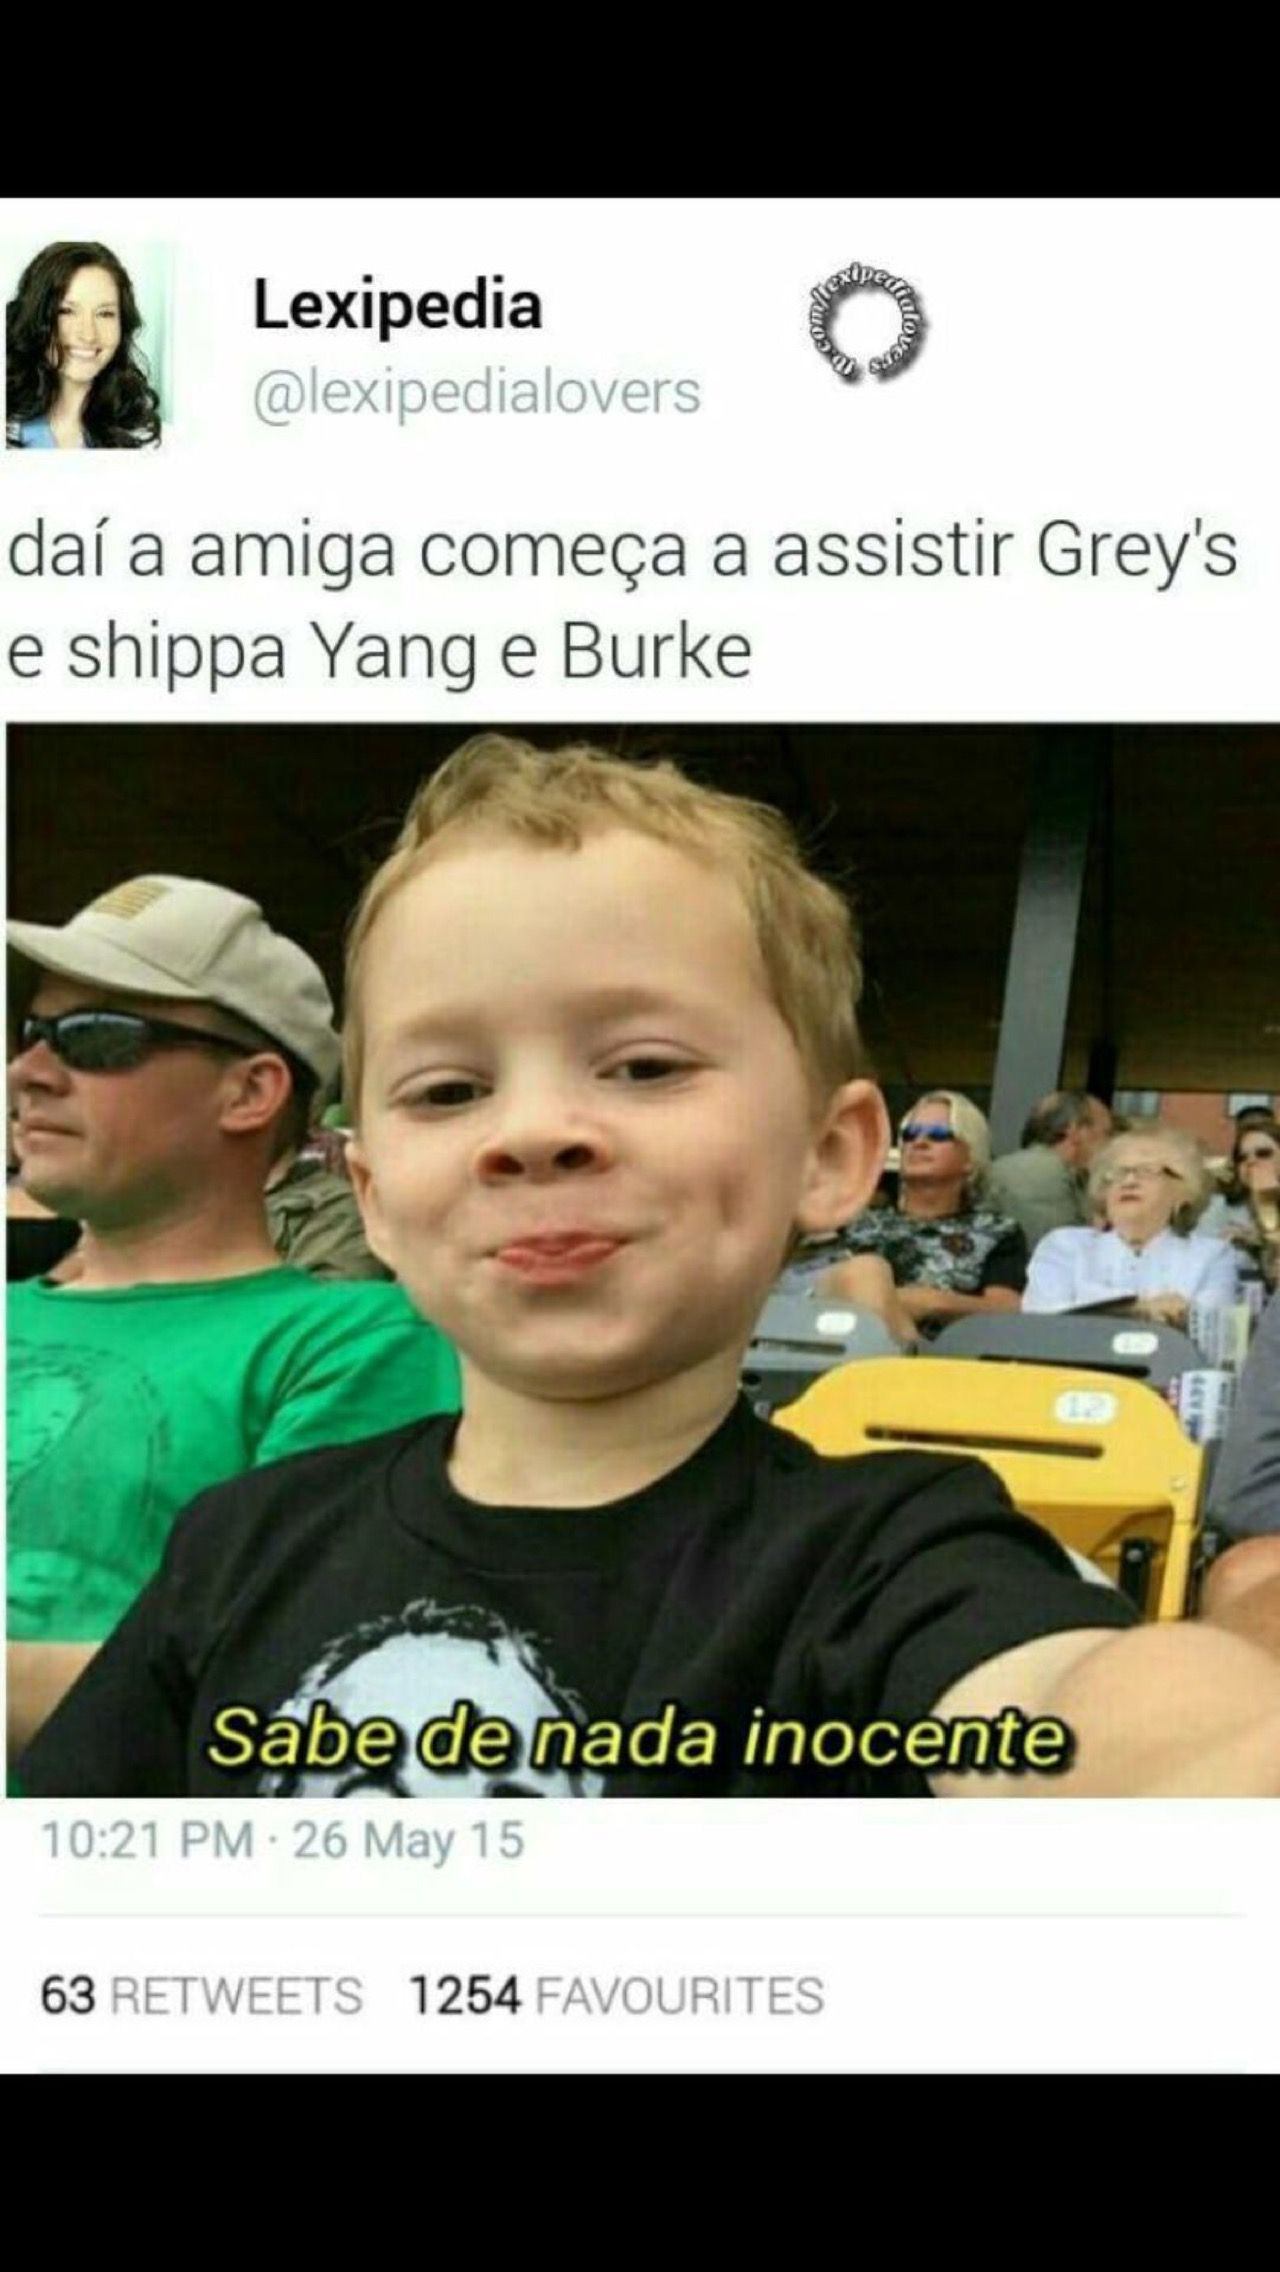 Kkkkkk | Tv Shows | Pinterest | Anatomy, Grays anatomy and Grey